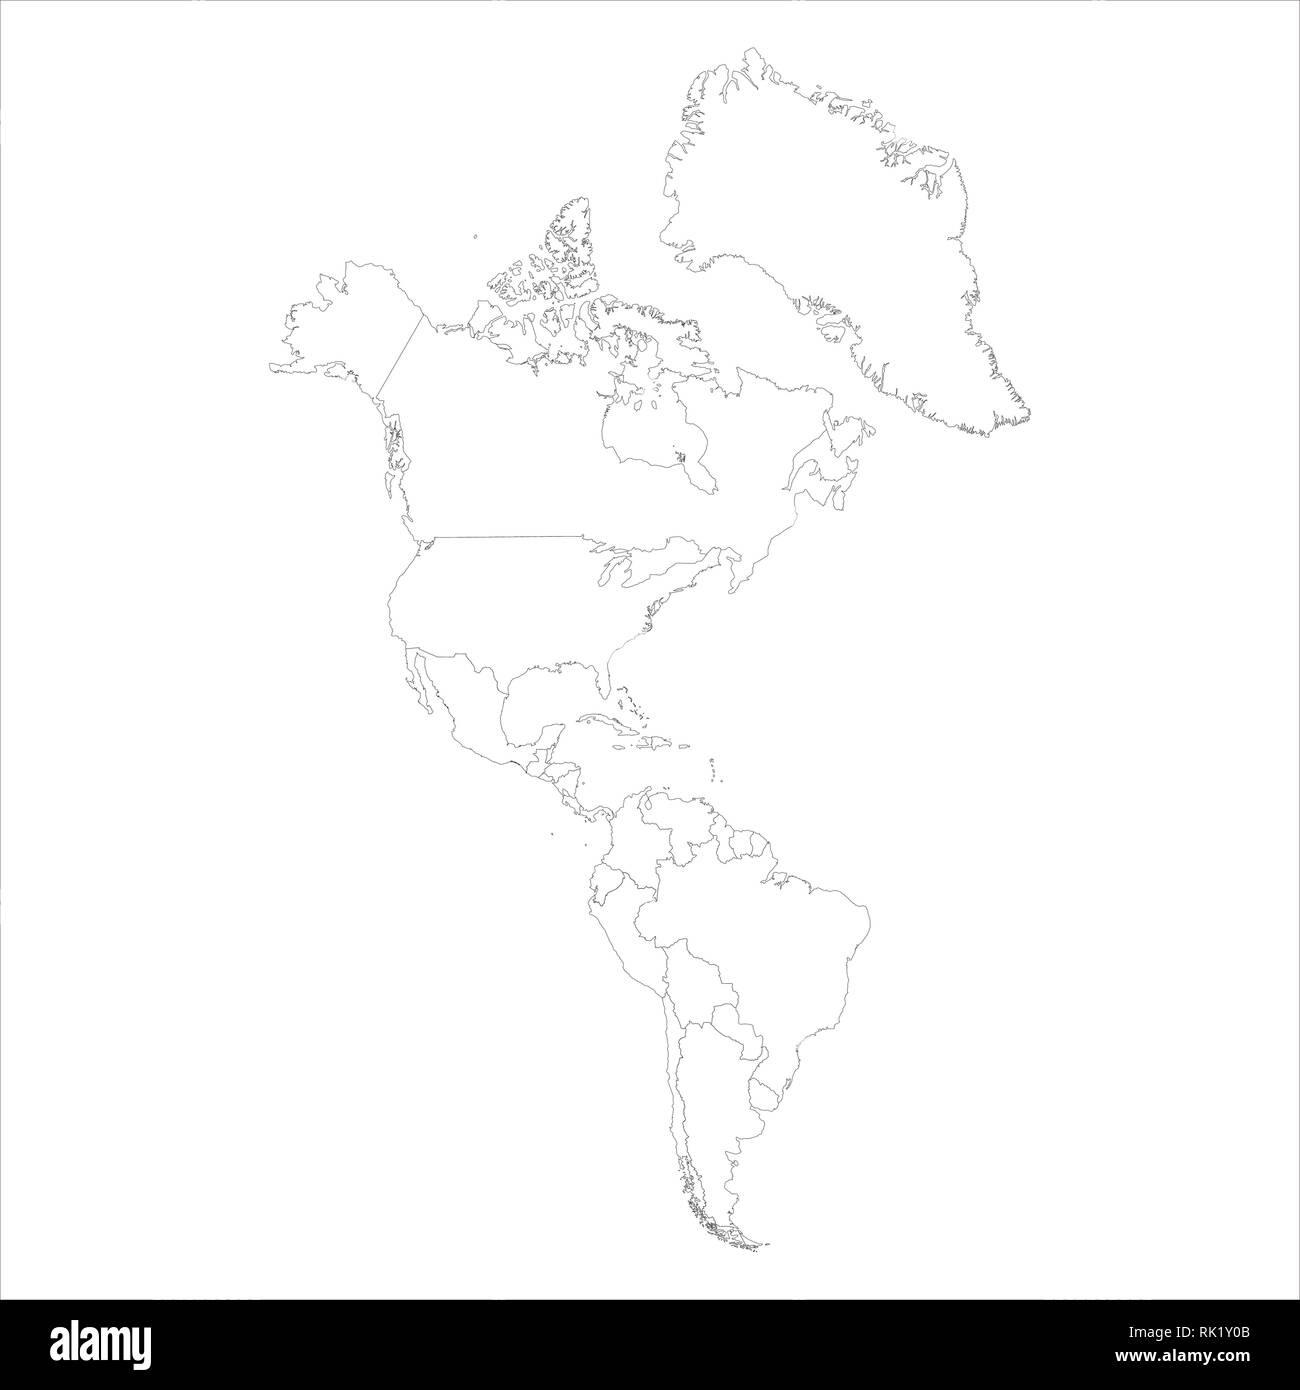 Vector illustration map of South and North America isolated ... on map of america map, drawing mexico map, united states of america map, drawing canada map, drawing france map,